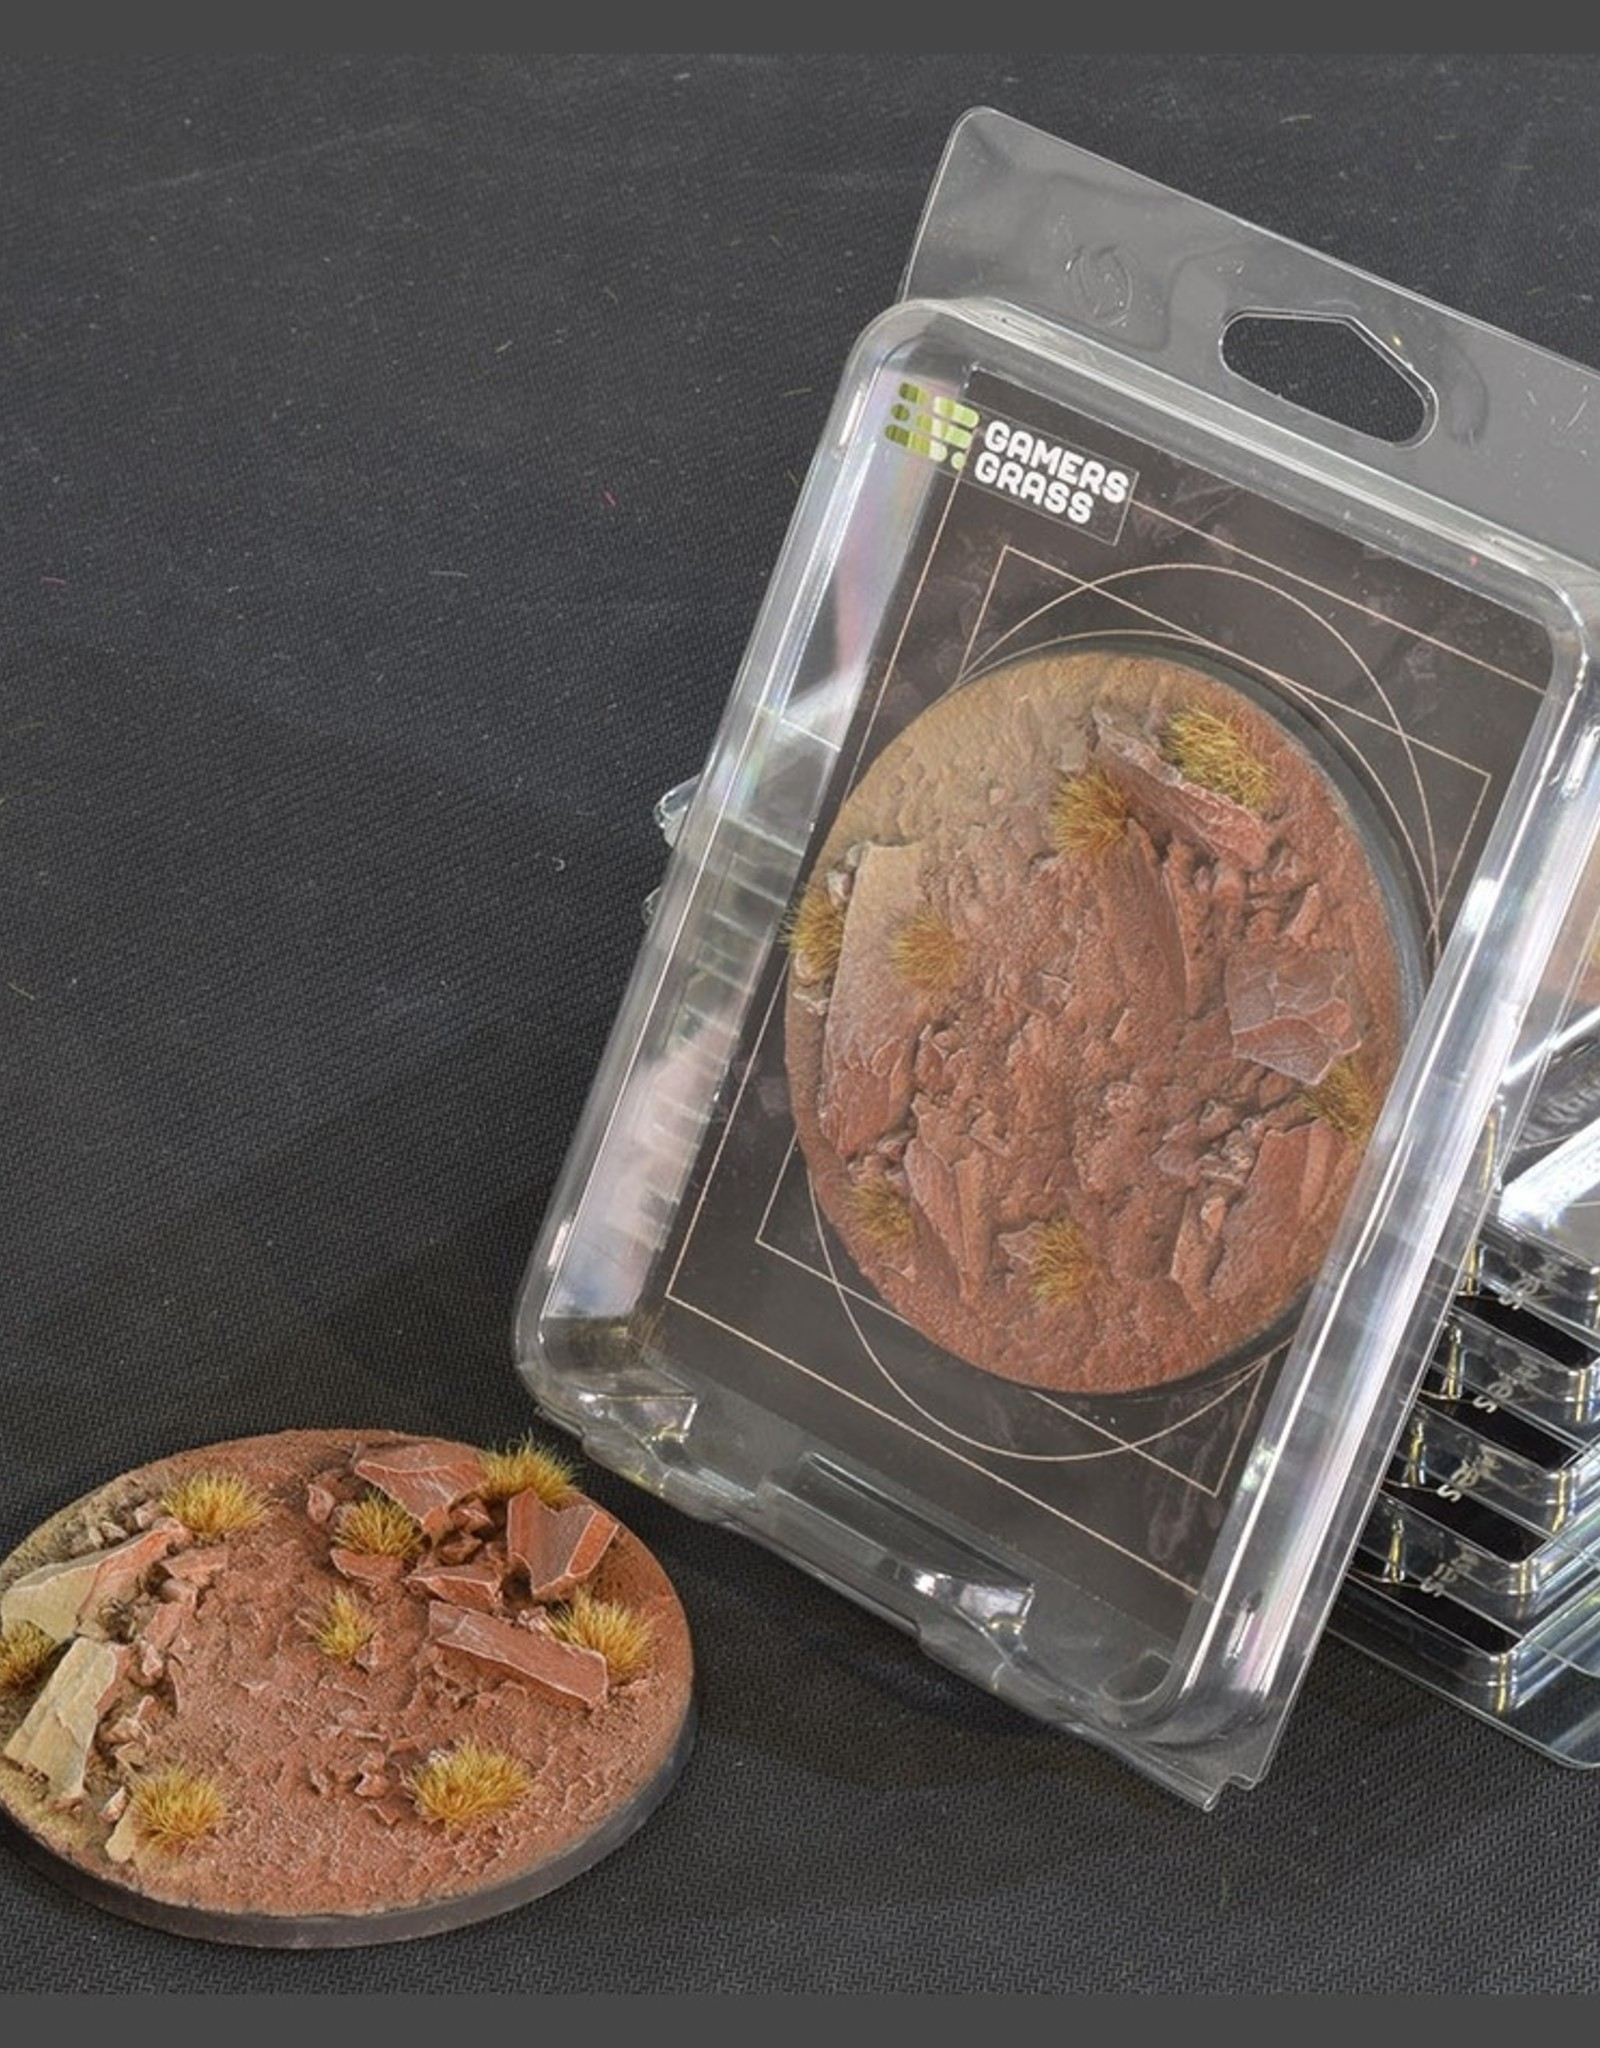 Gamers Grass Badlands Bases Pre-Painted (1x 100mm Round)